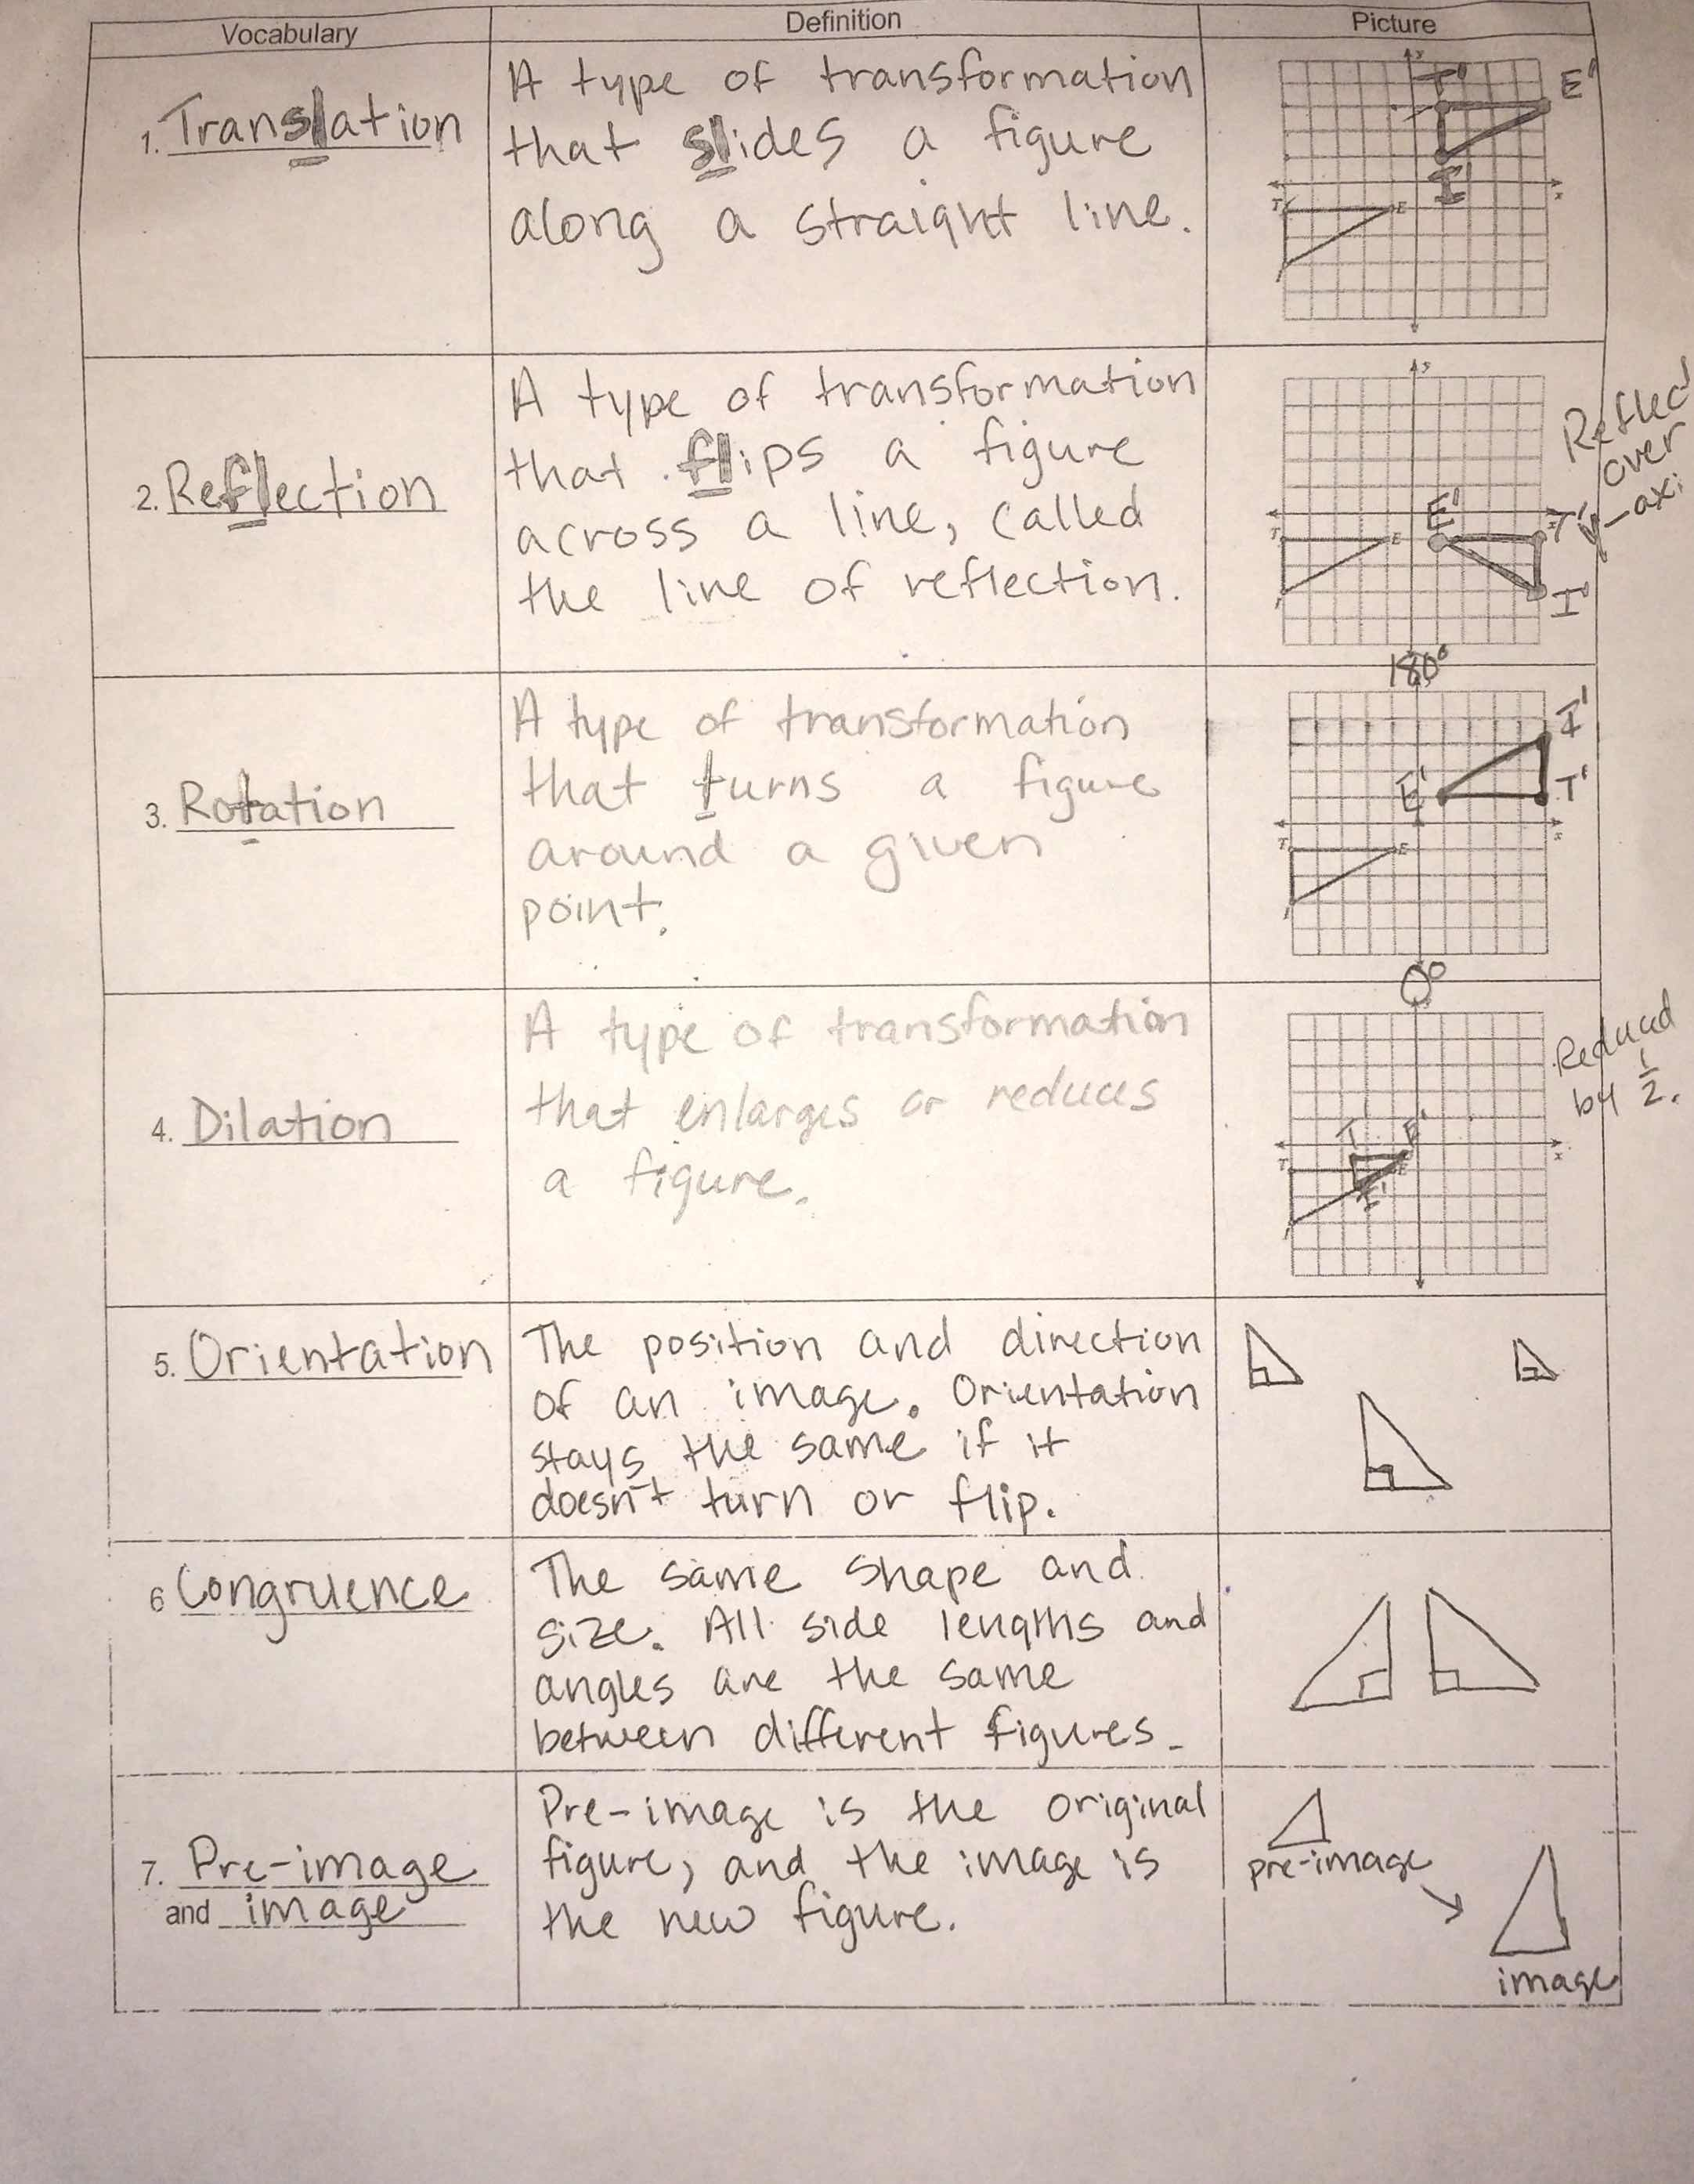 Worksheet Ontario Math Curriculum Grade 6 ontario math curriculum grade 6 geometry nelson worksheet transformational questions transformations and 6